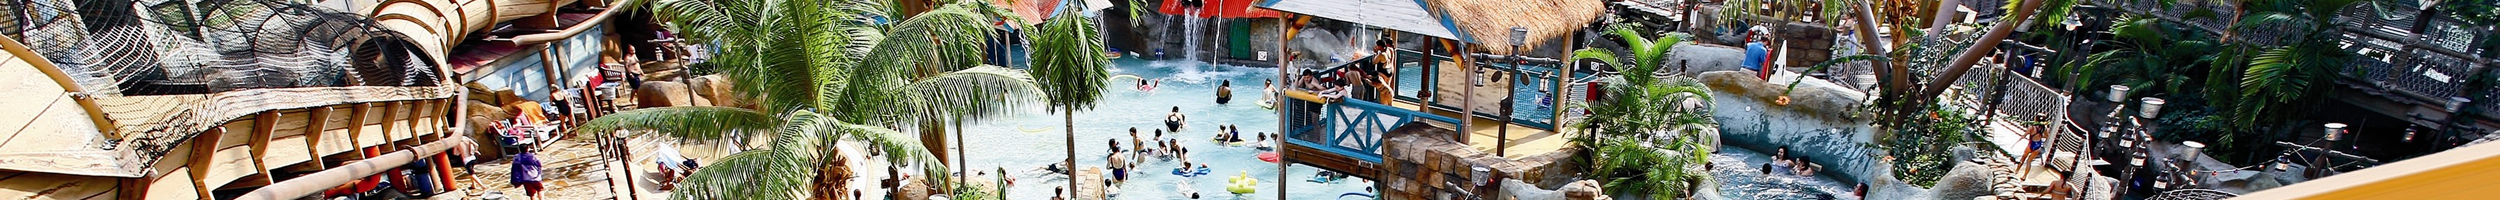 waterpark-slider-bg